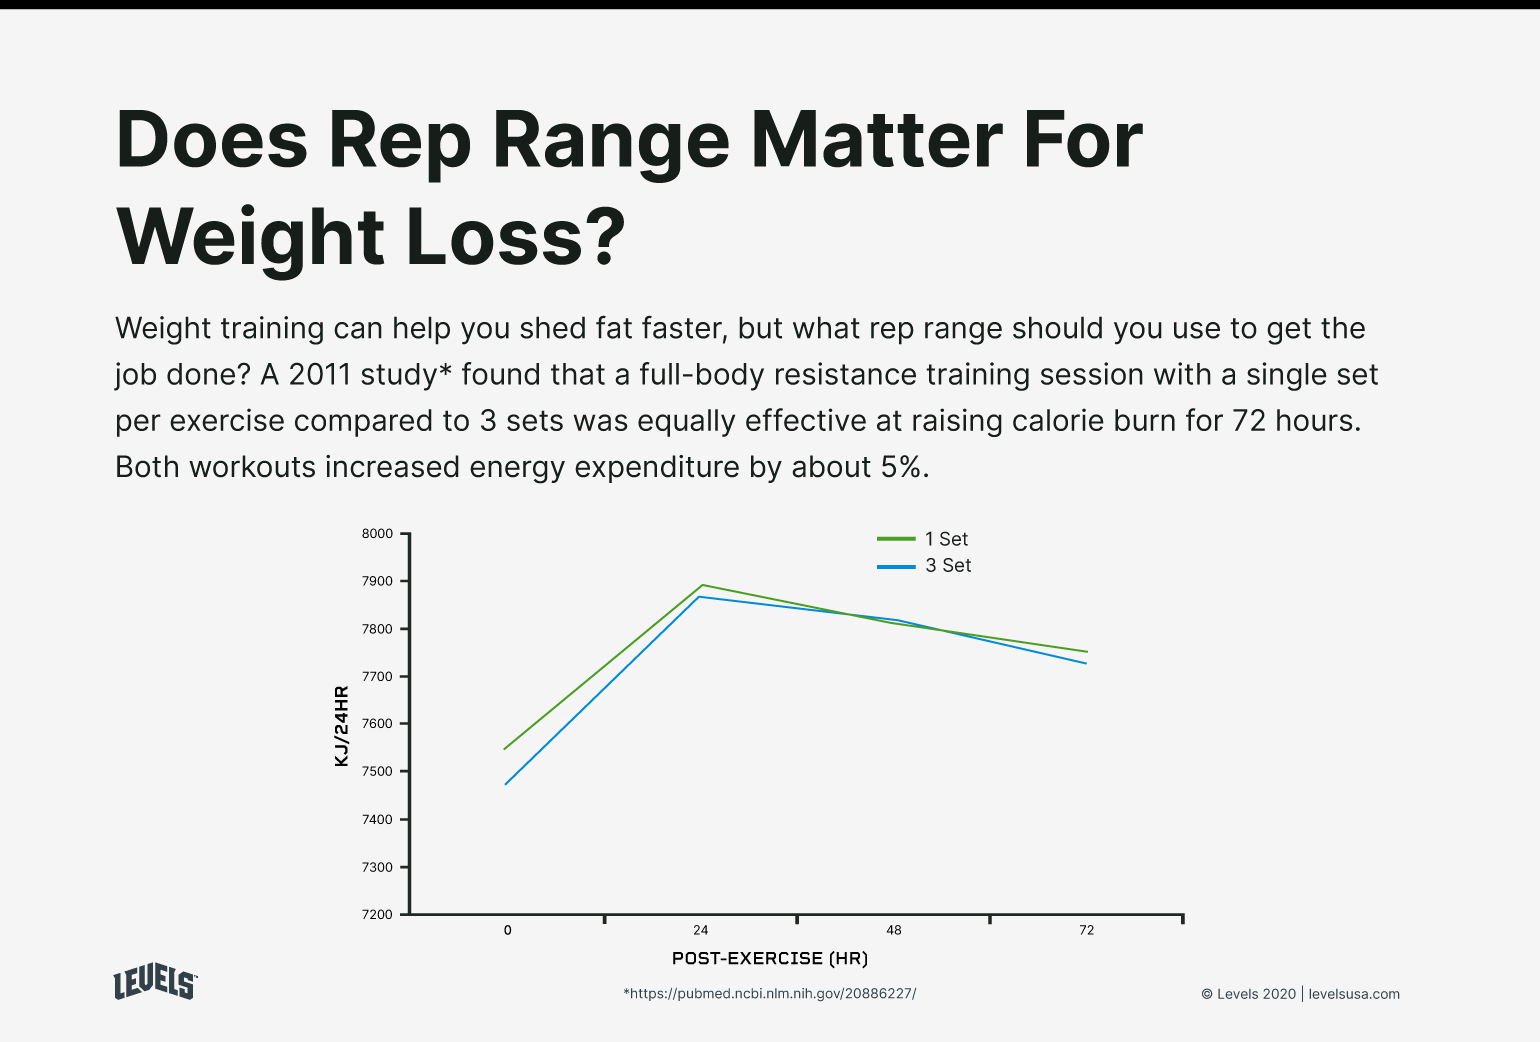 Rep Range For Weight Loss - Infographic